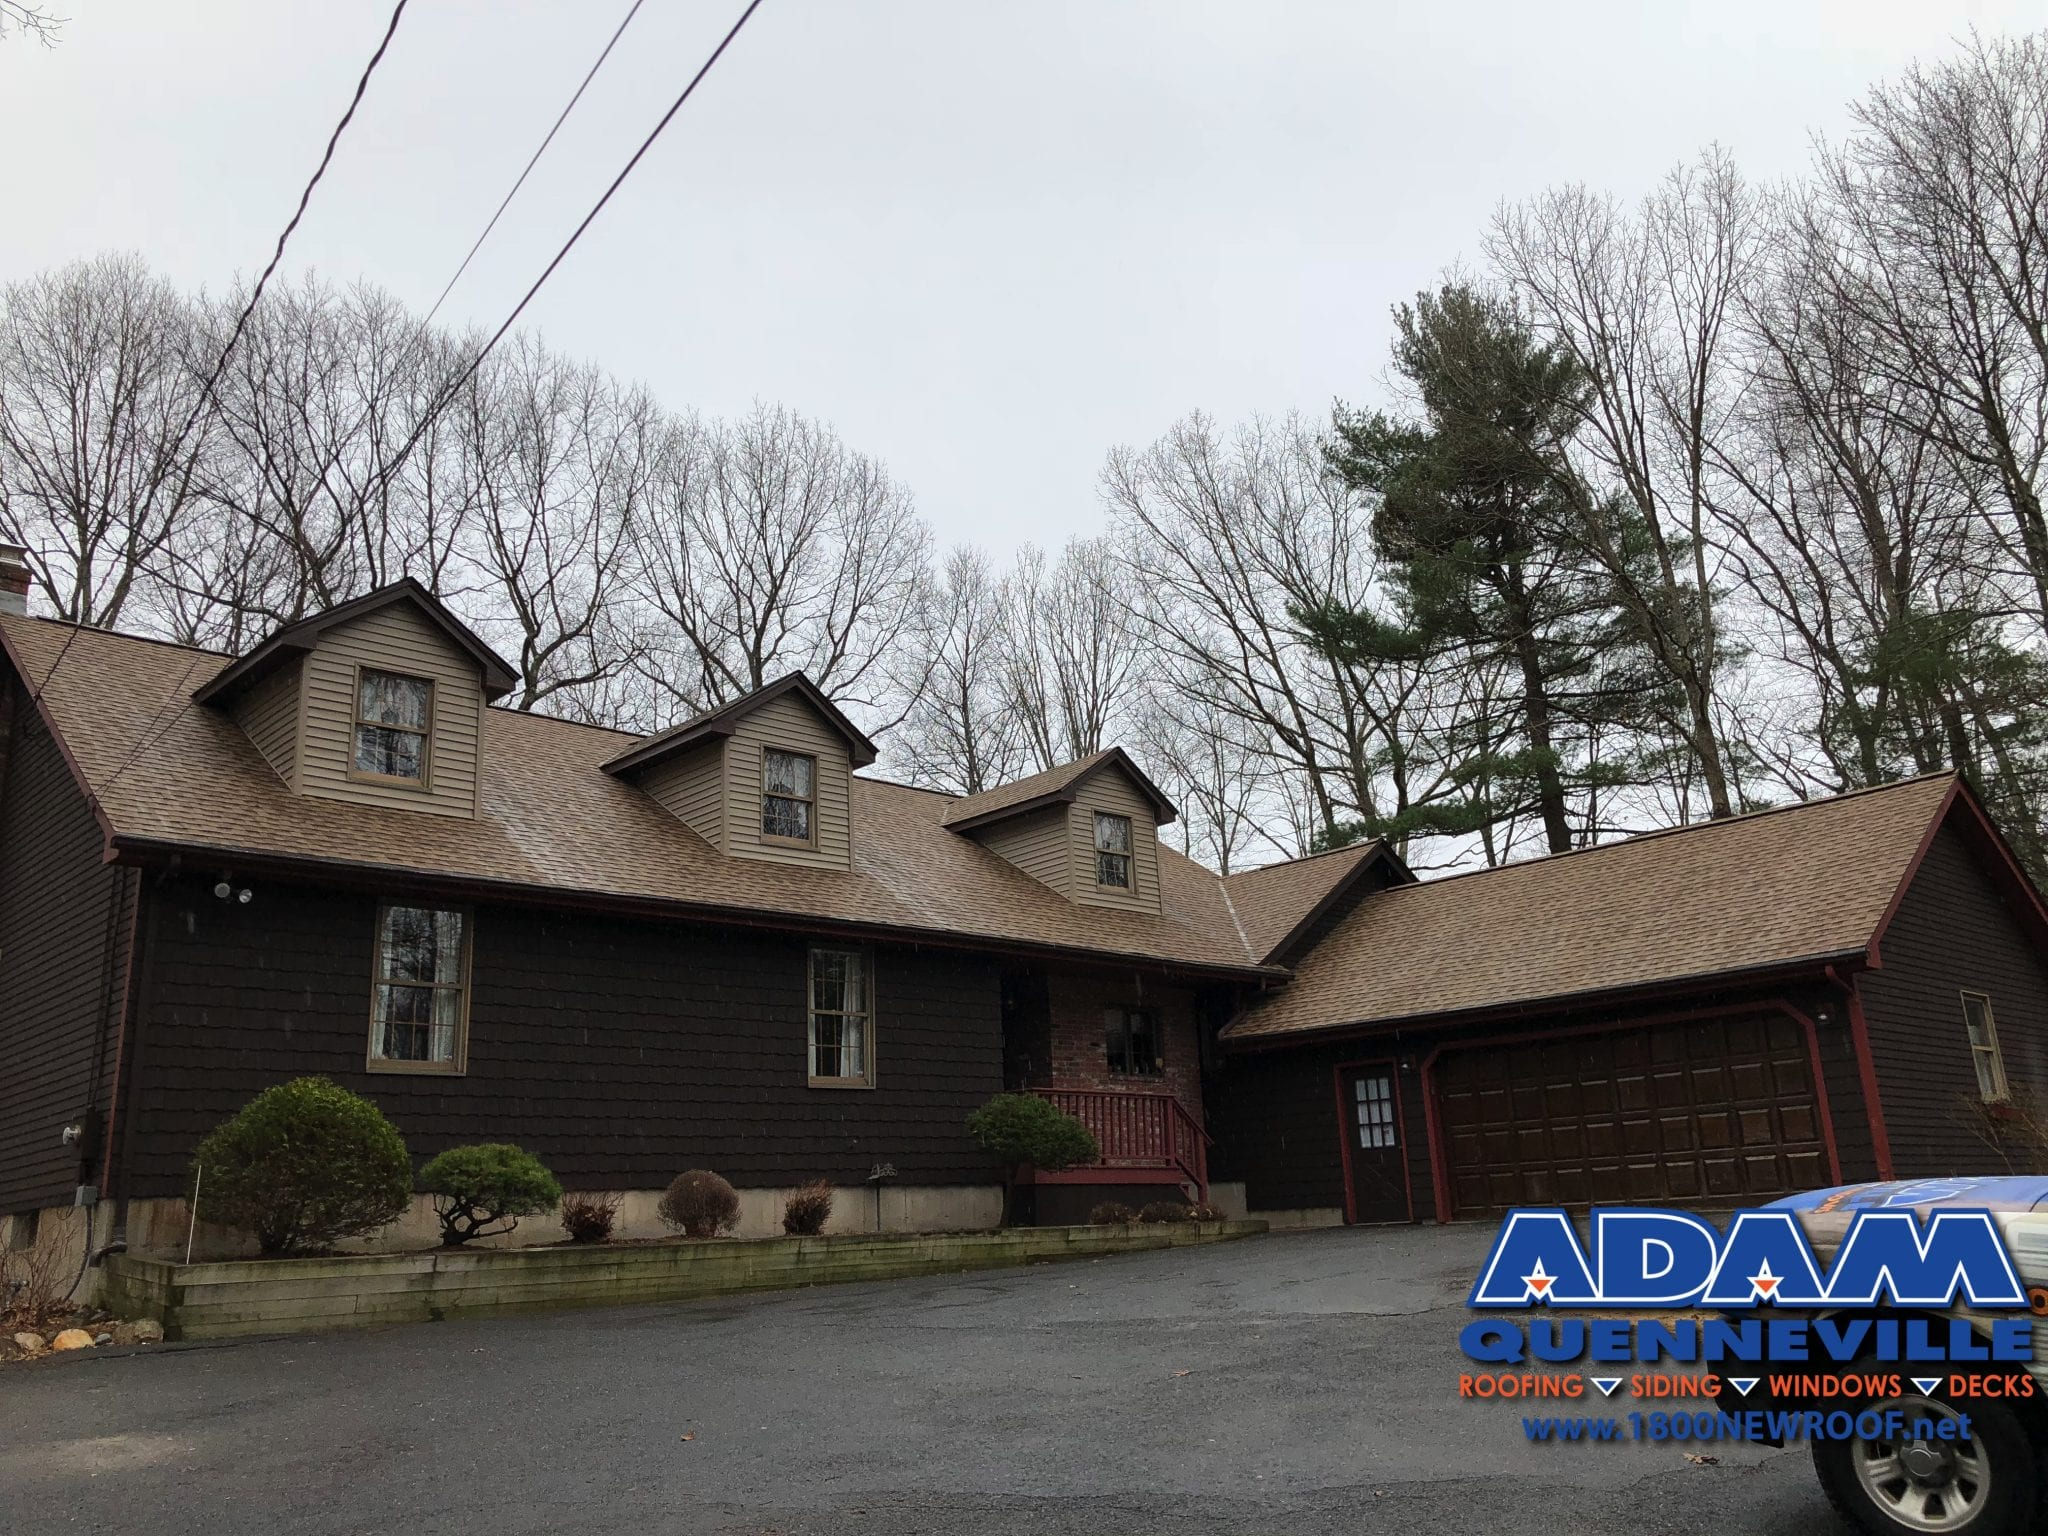 This is a photo of a completed roofing and siding replacement project with brown shingles.